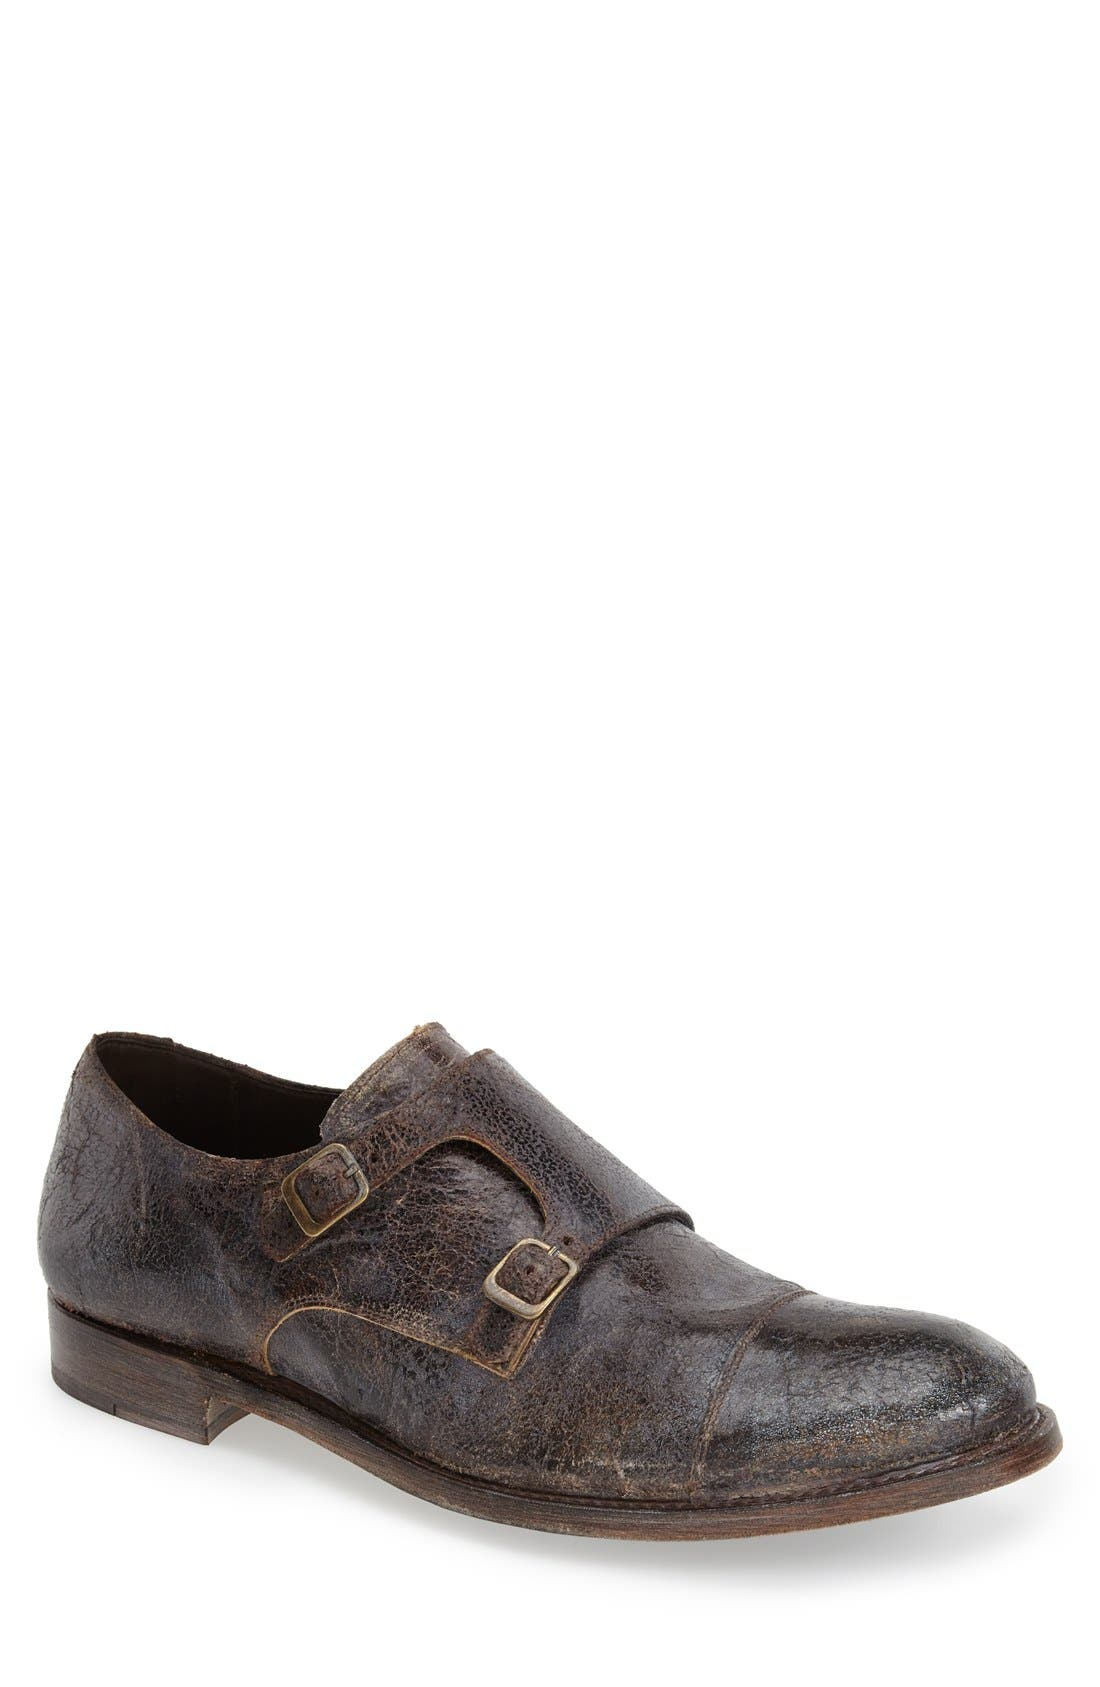 Sendra Boots 'Friar Tuk' Double Monk Strap Shoe (Men)